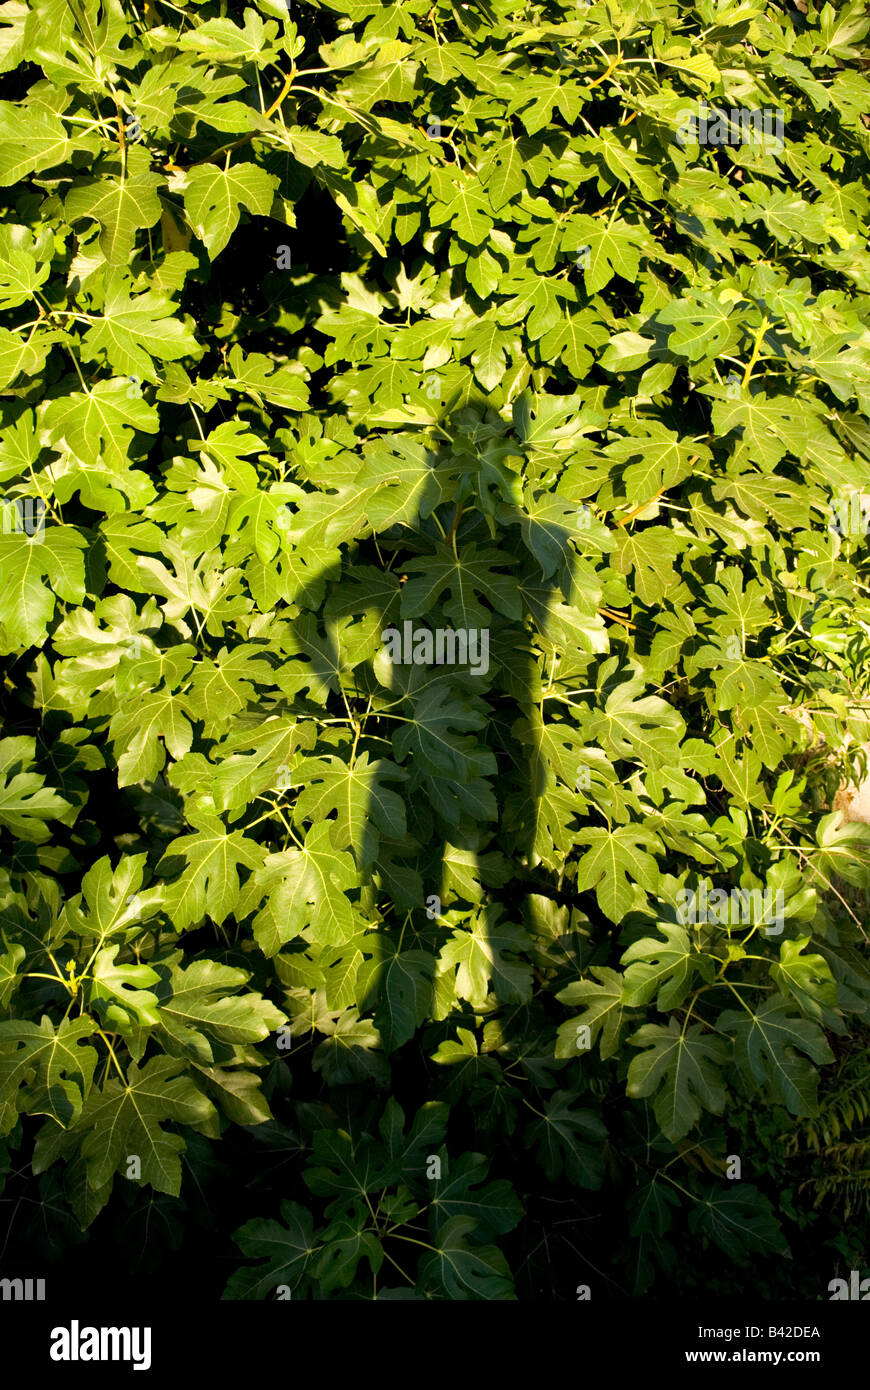 someones full length shadow is projected onto thick foliage provided by a figtree - Stock Image